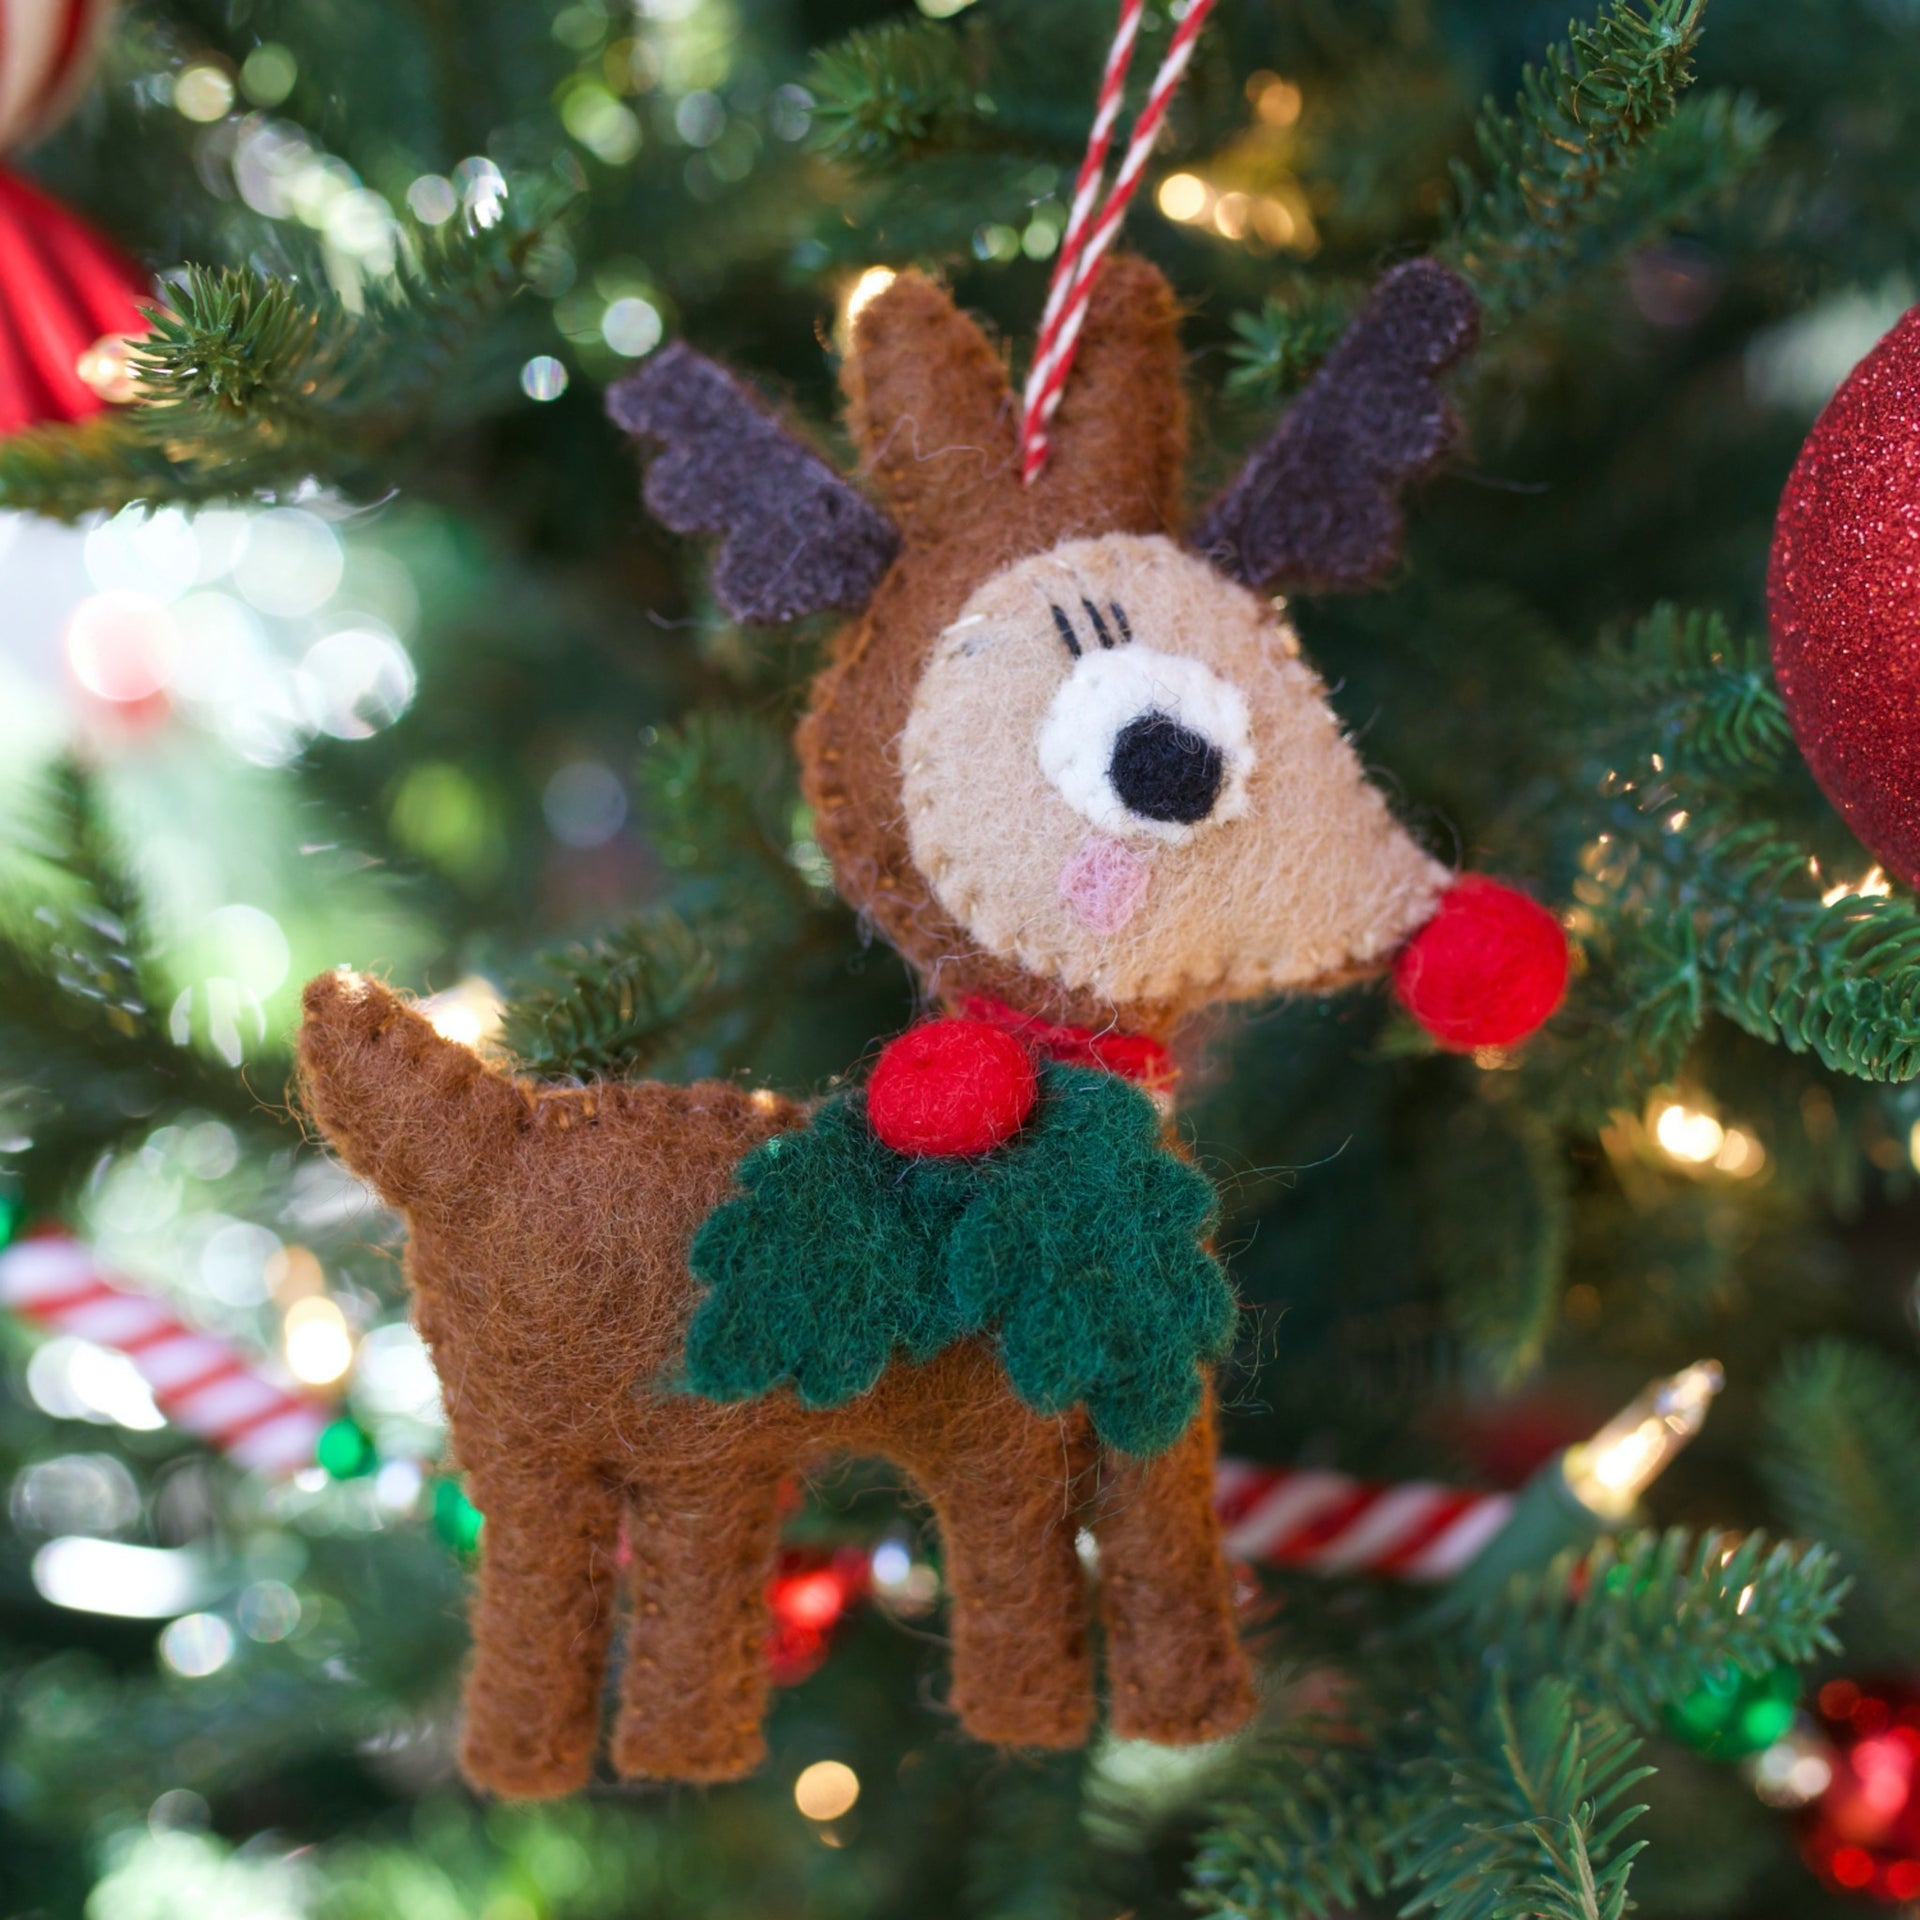 Reindeer with Holly Ornament, Felt Wool